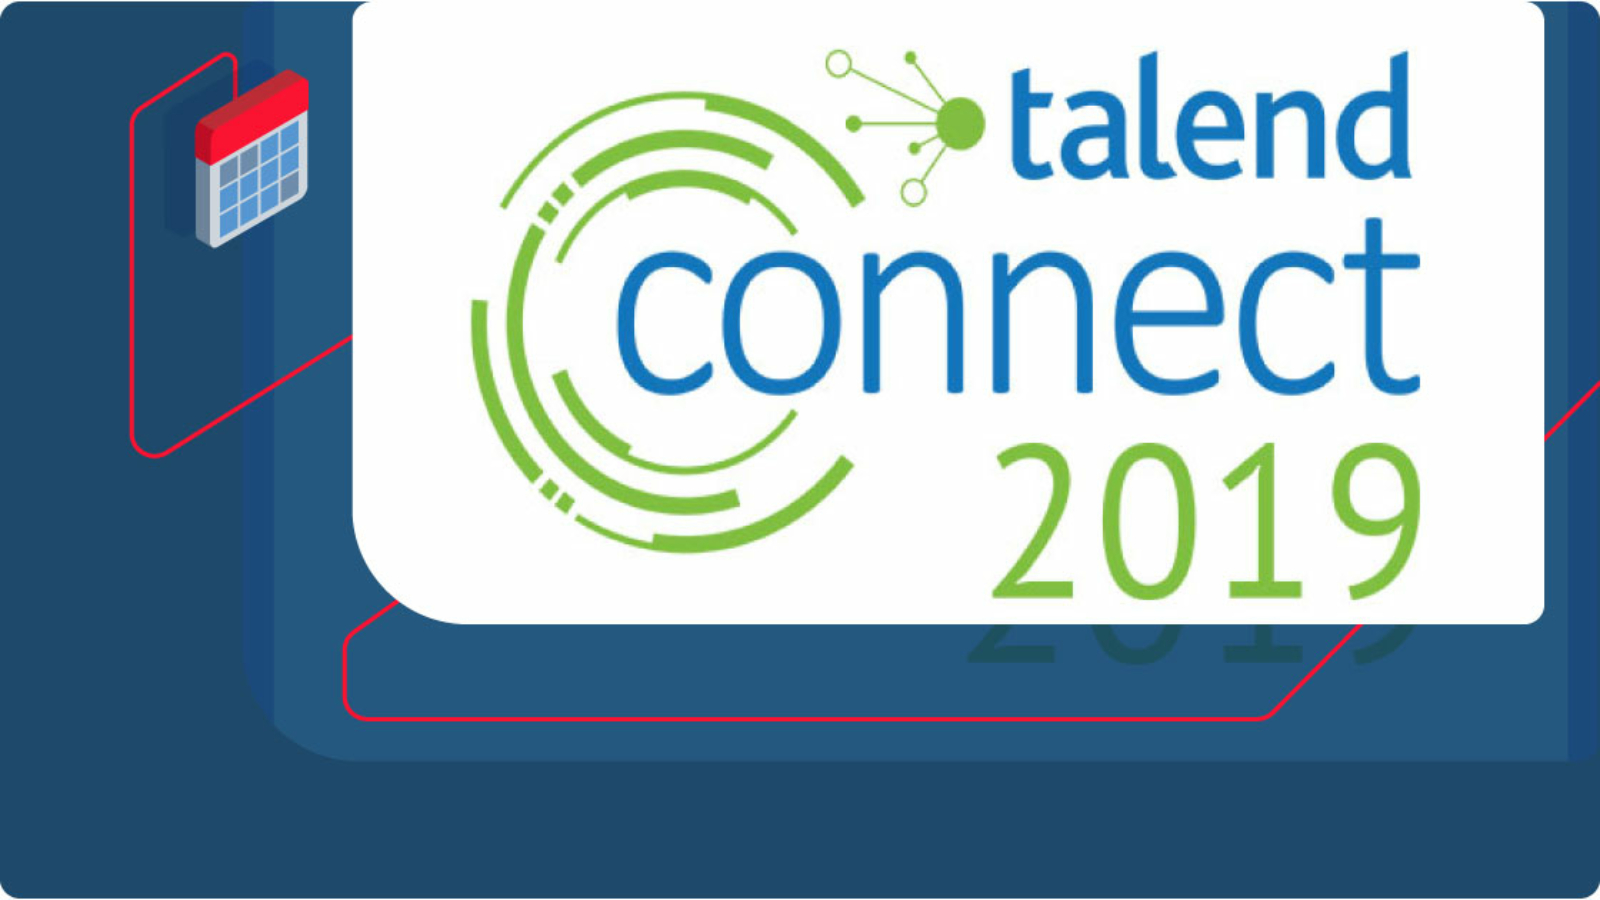 Blog-Poster-talend-connect-2019-